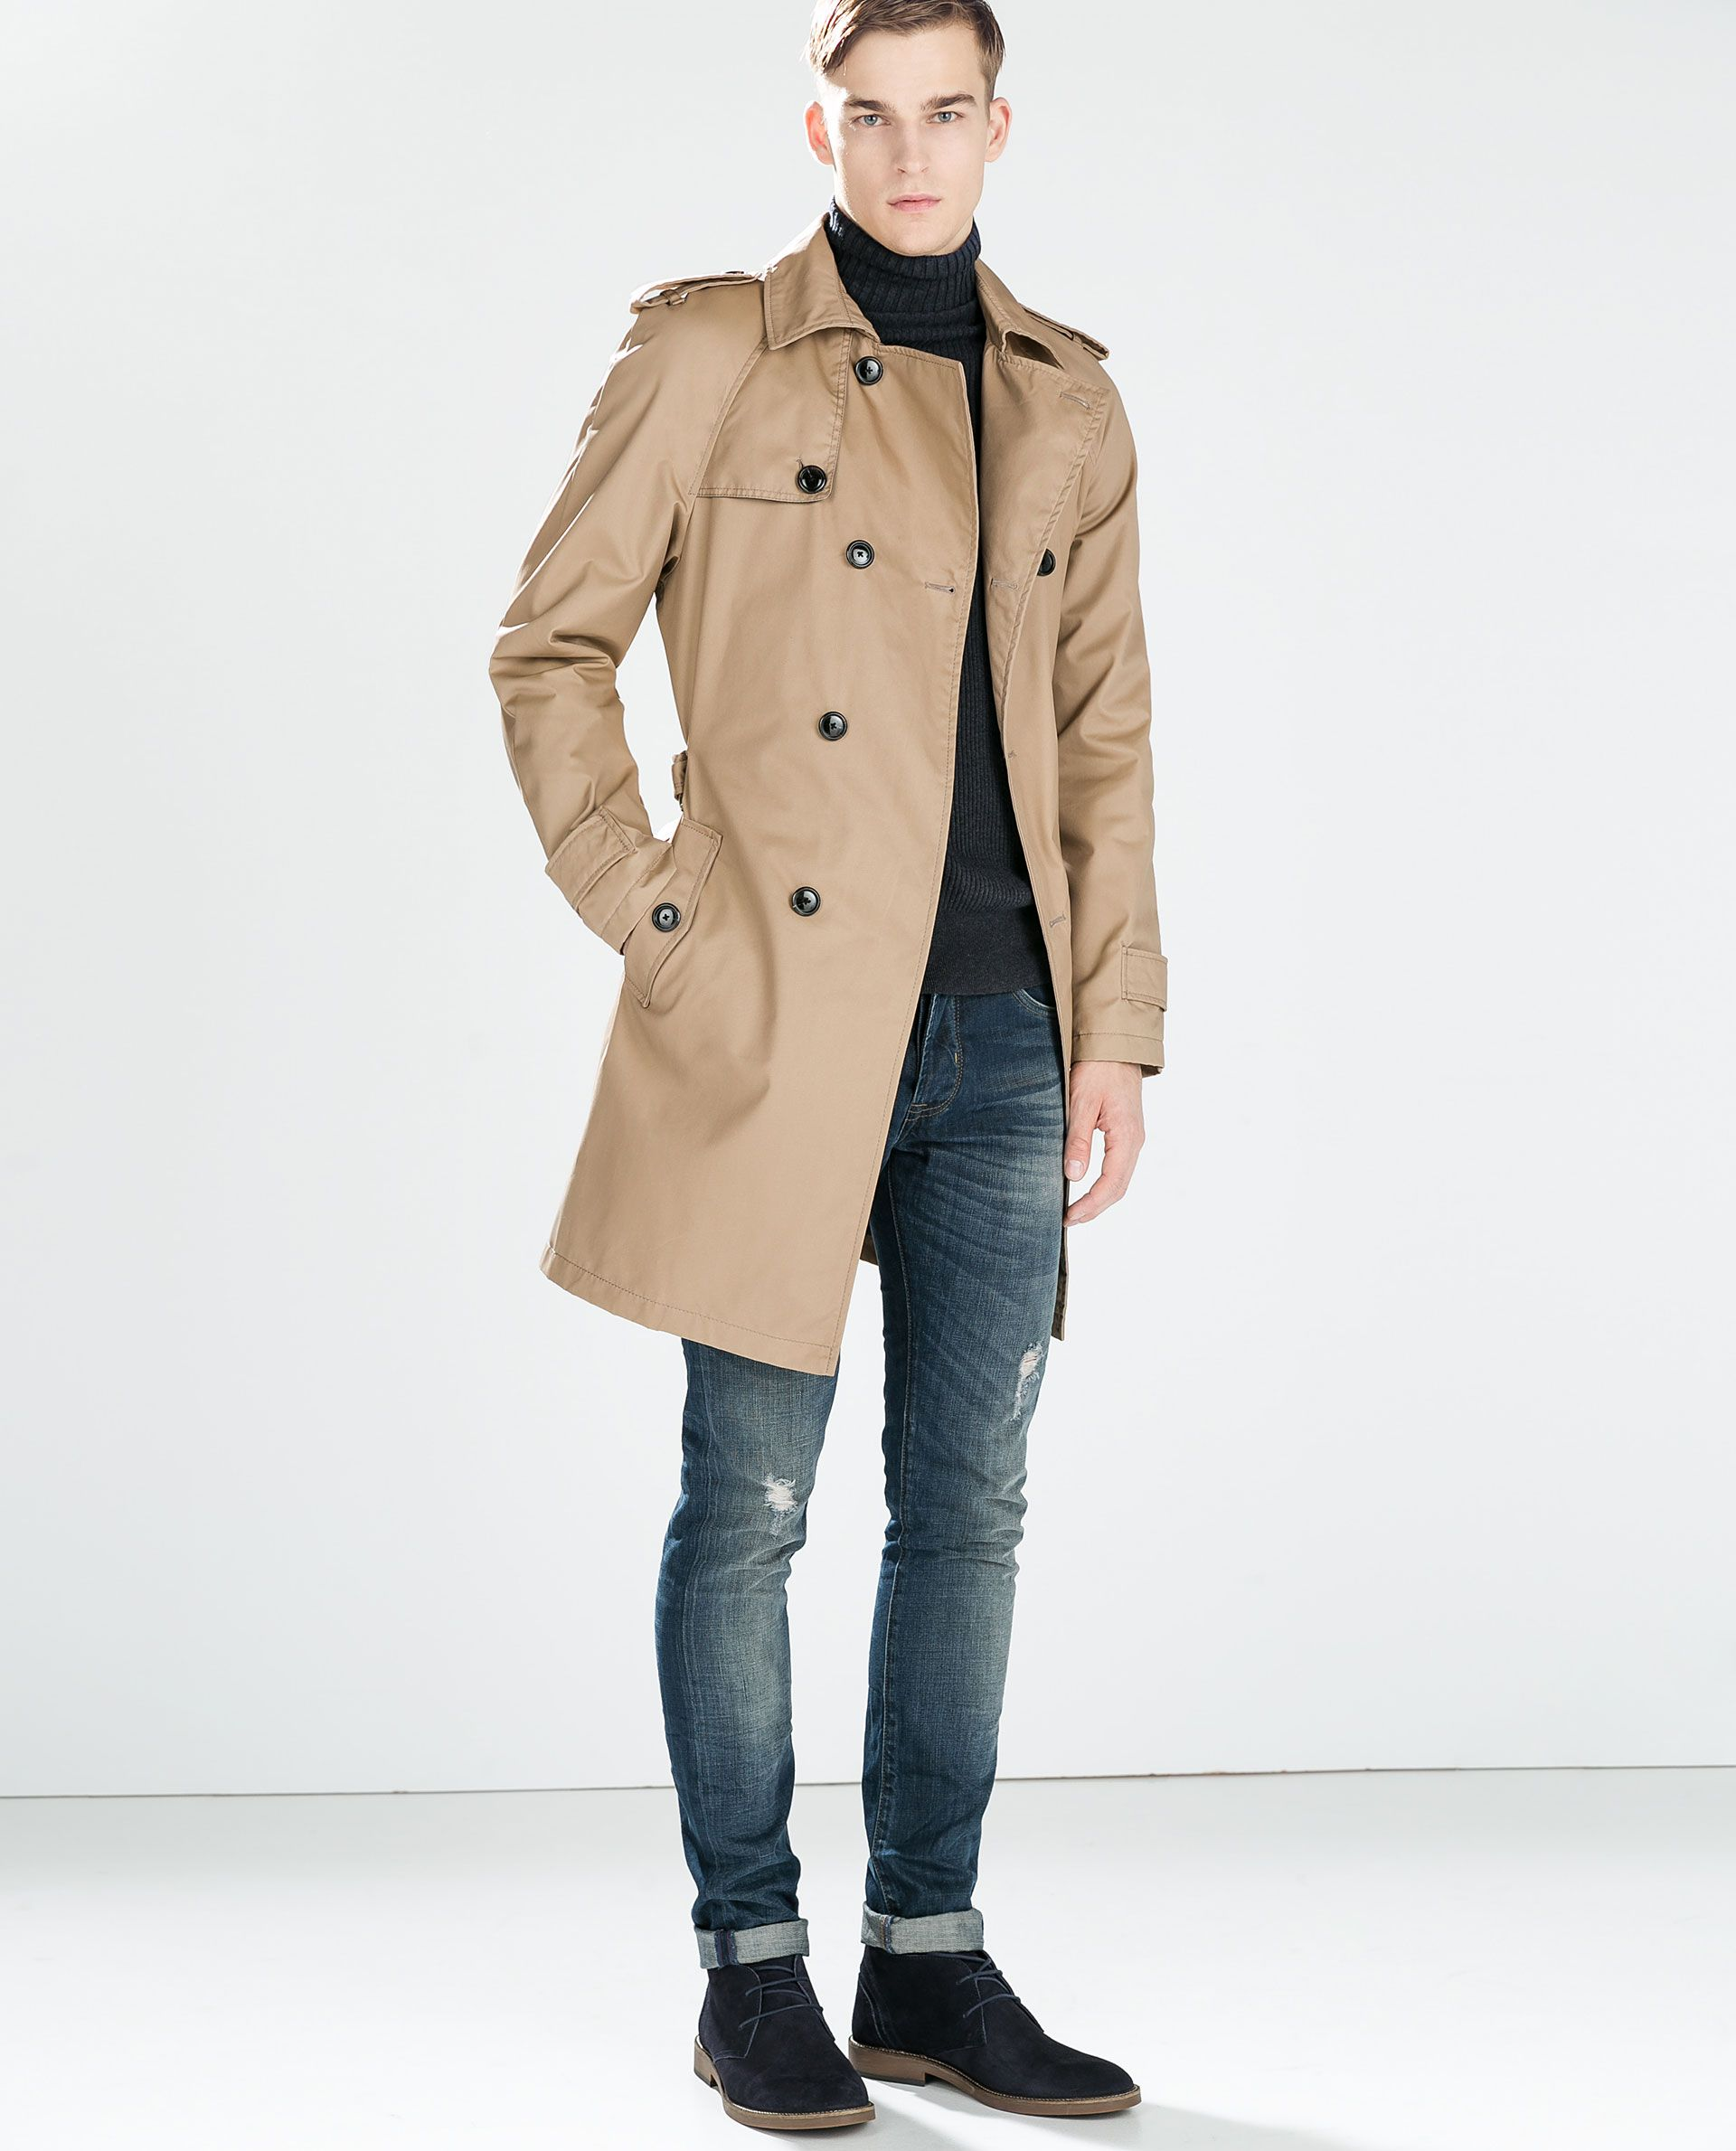 Zara Men Trench Coat Tradingbasis